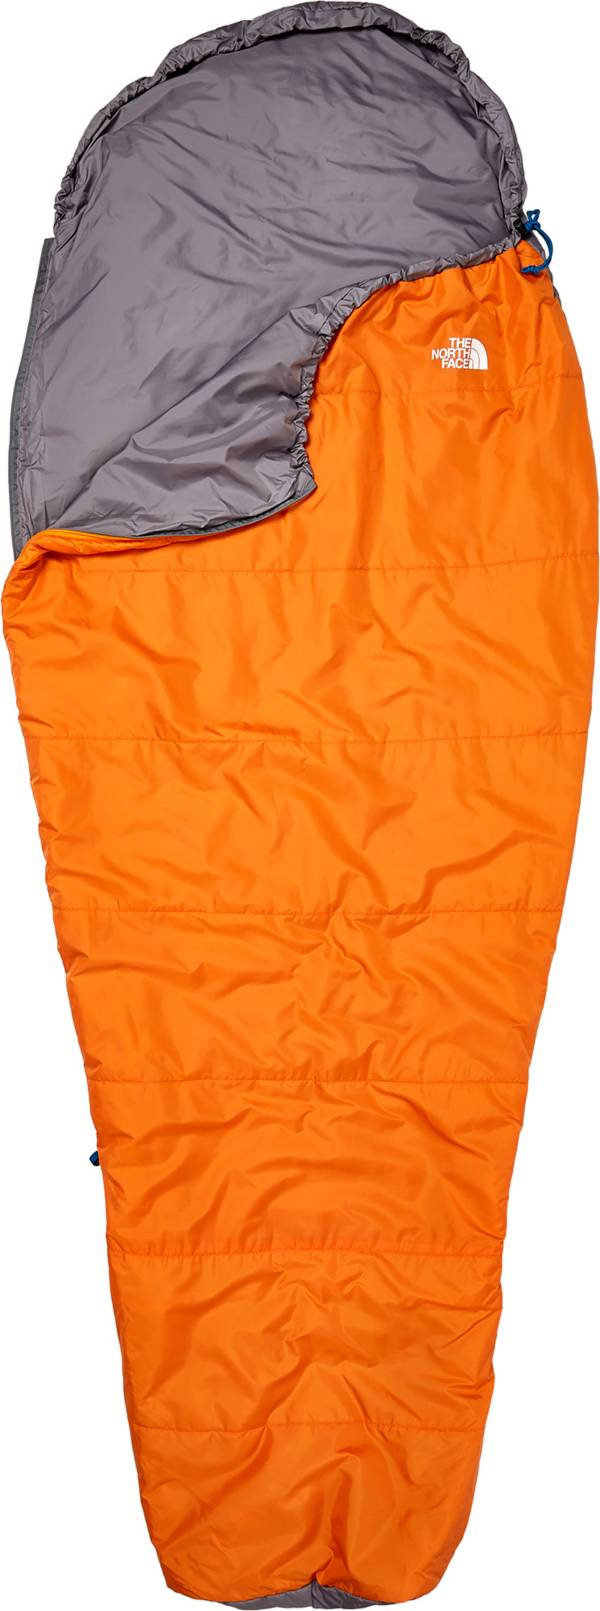 The North Face Wasatch 55° Sleeping Bag product image